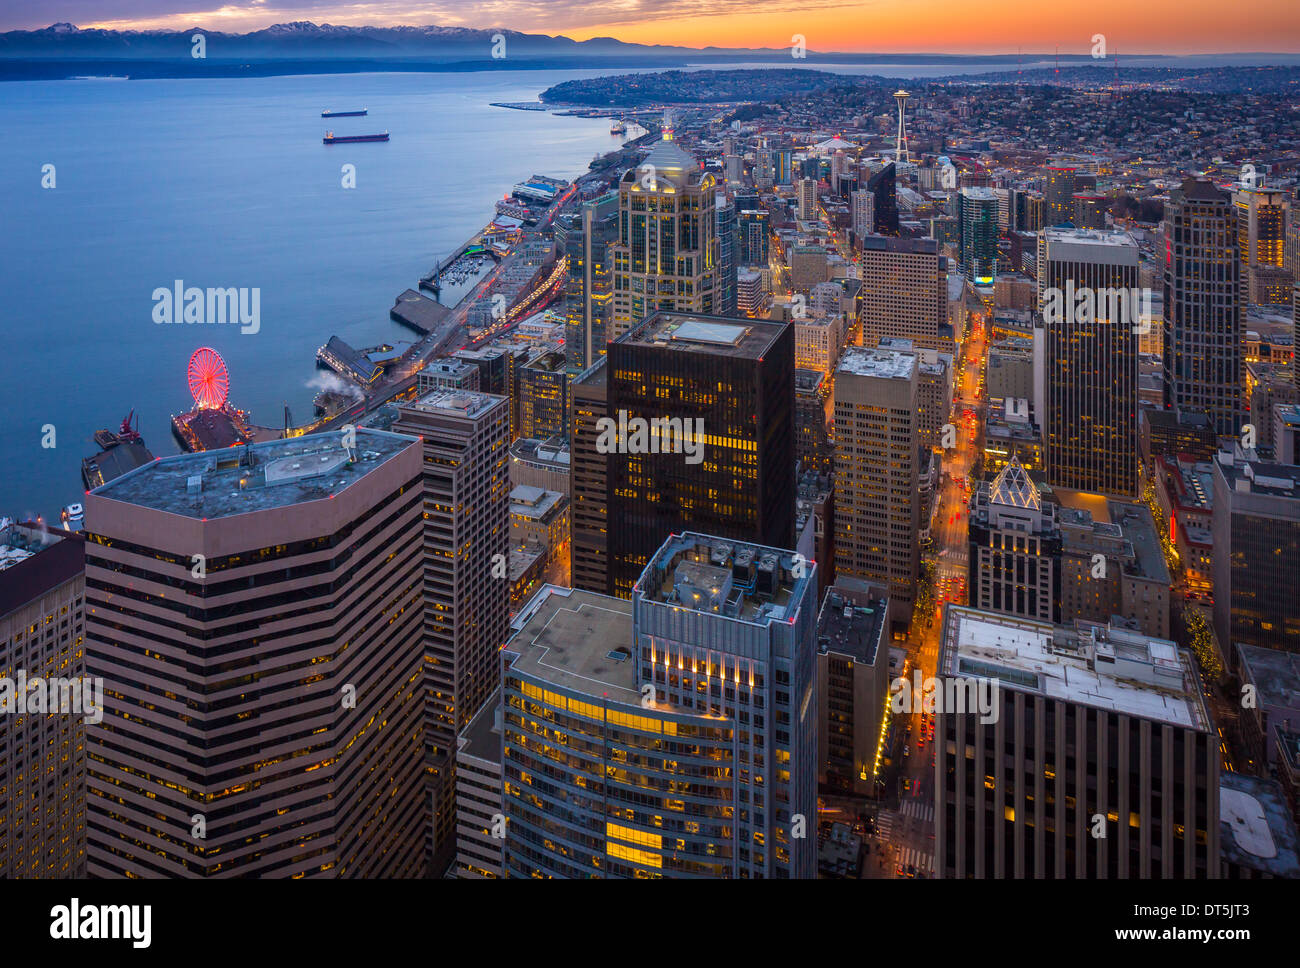 Seattle downtown with Elliot Bay and distant Olympic mountain range seen from above - Stock Image